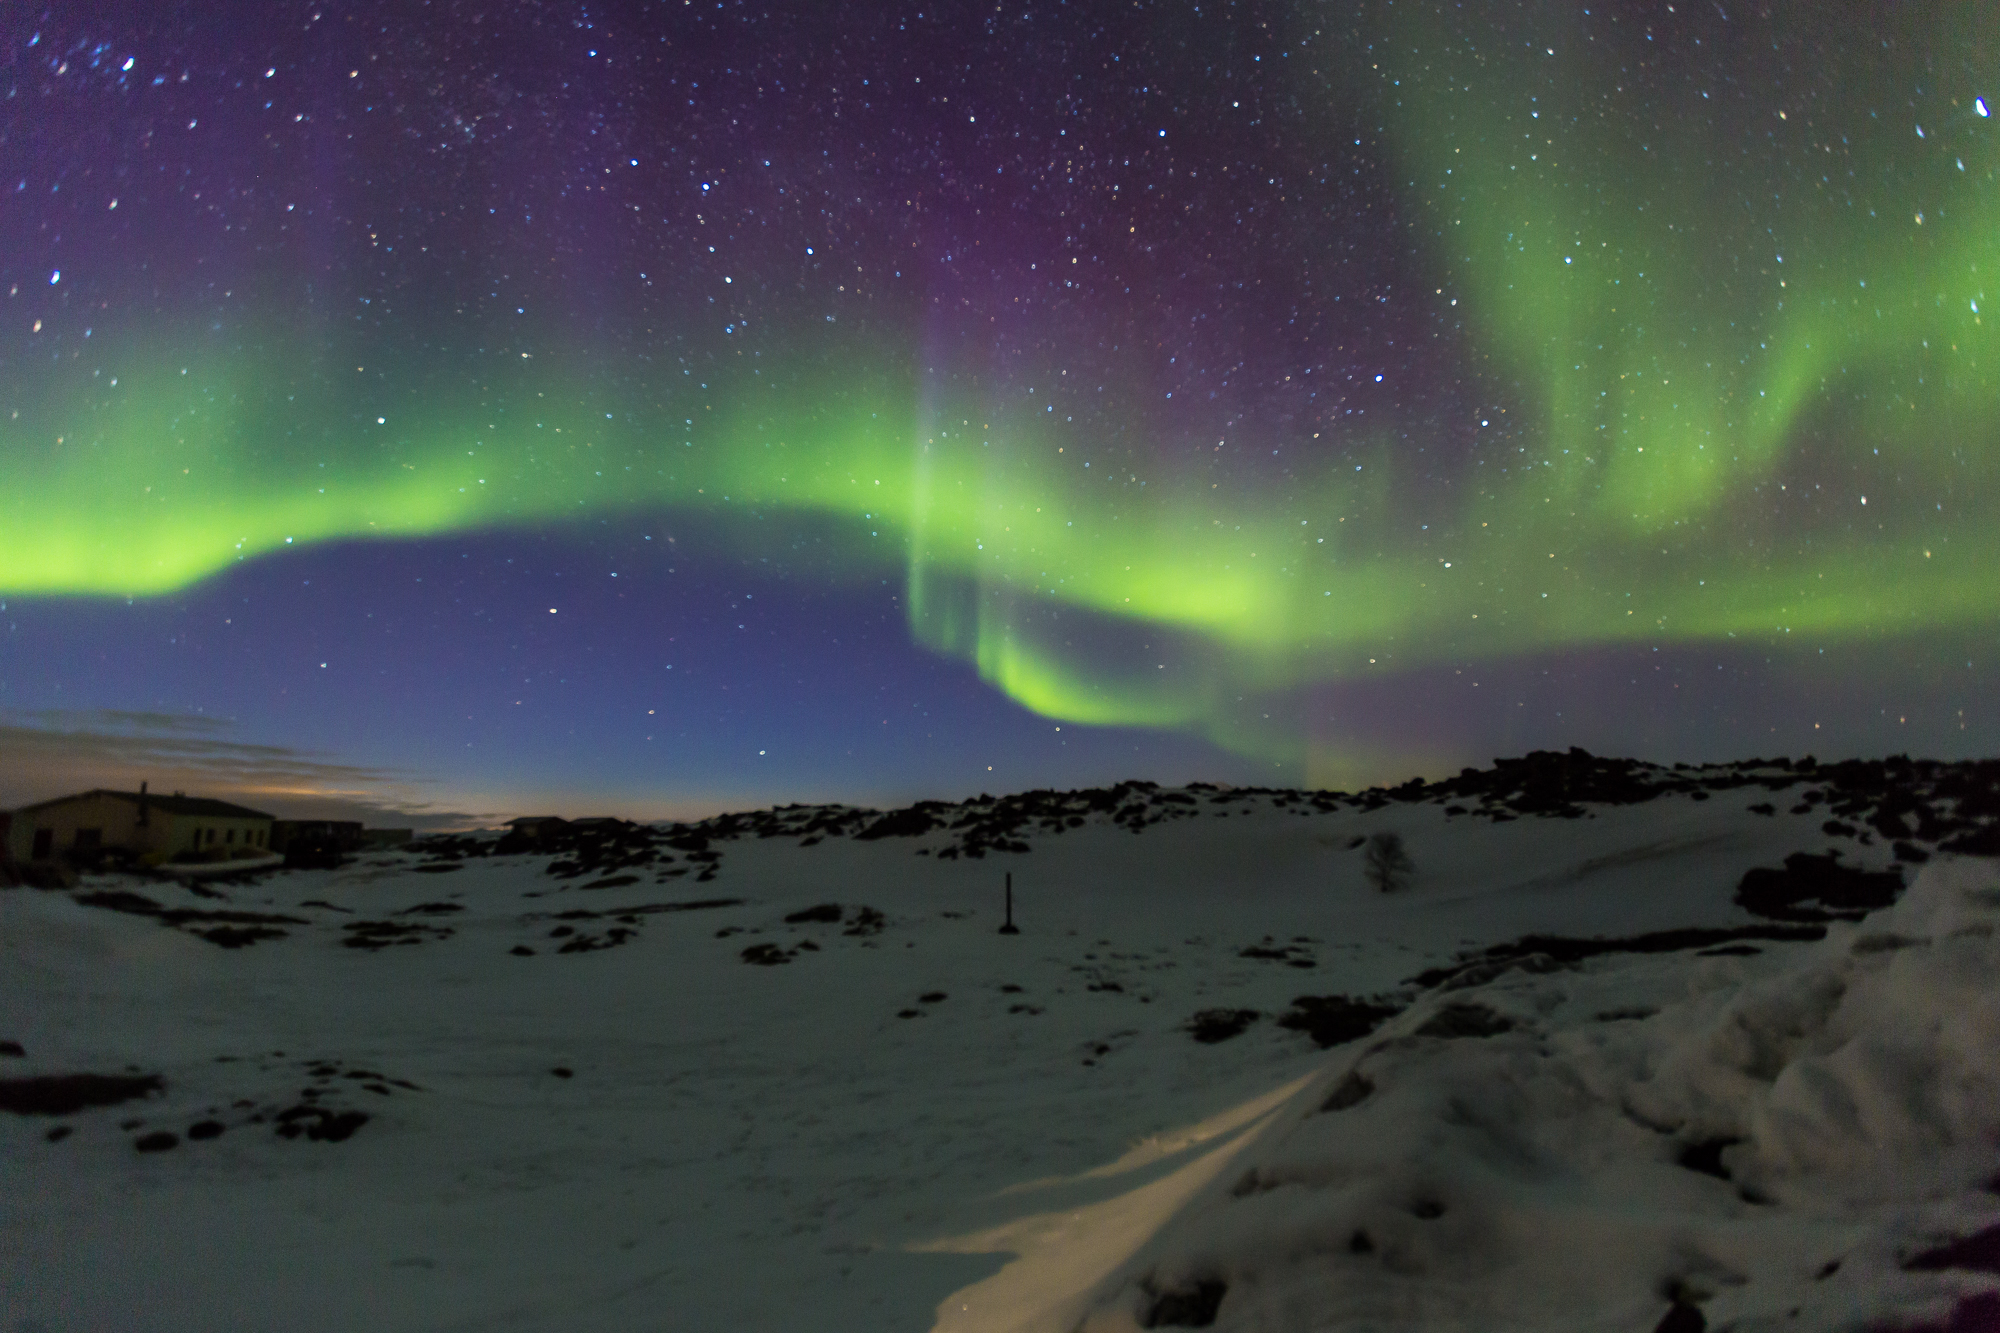 The beautiful colors of the Northern Lights